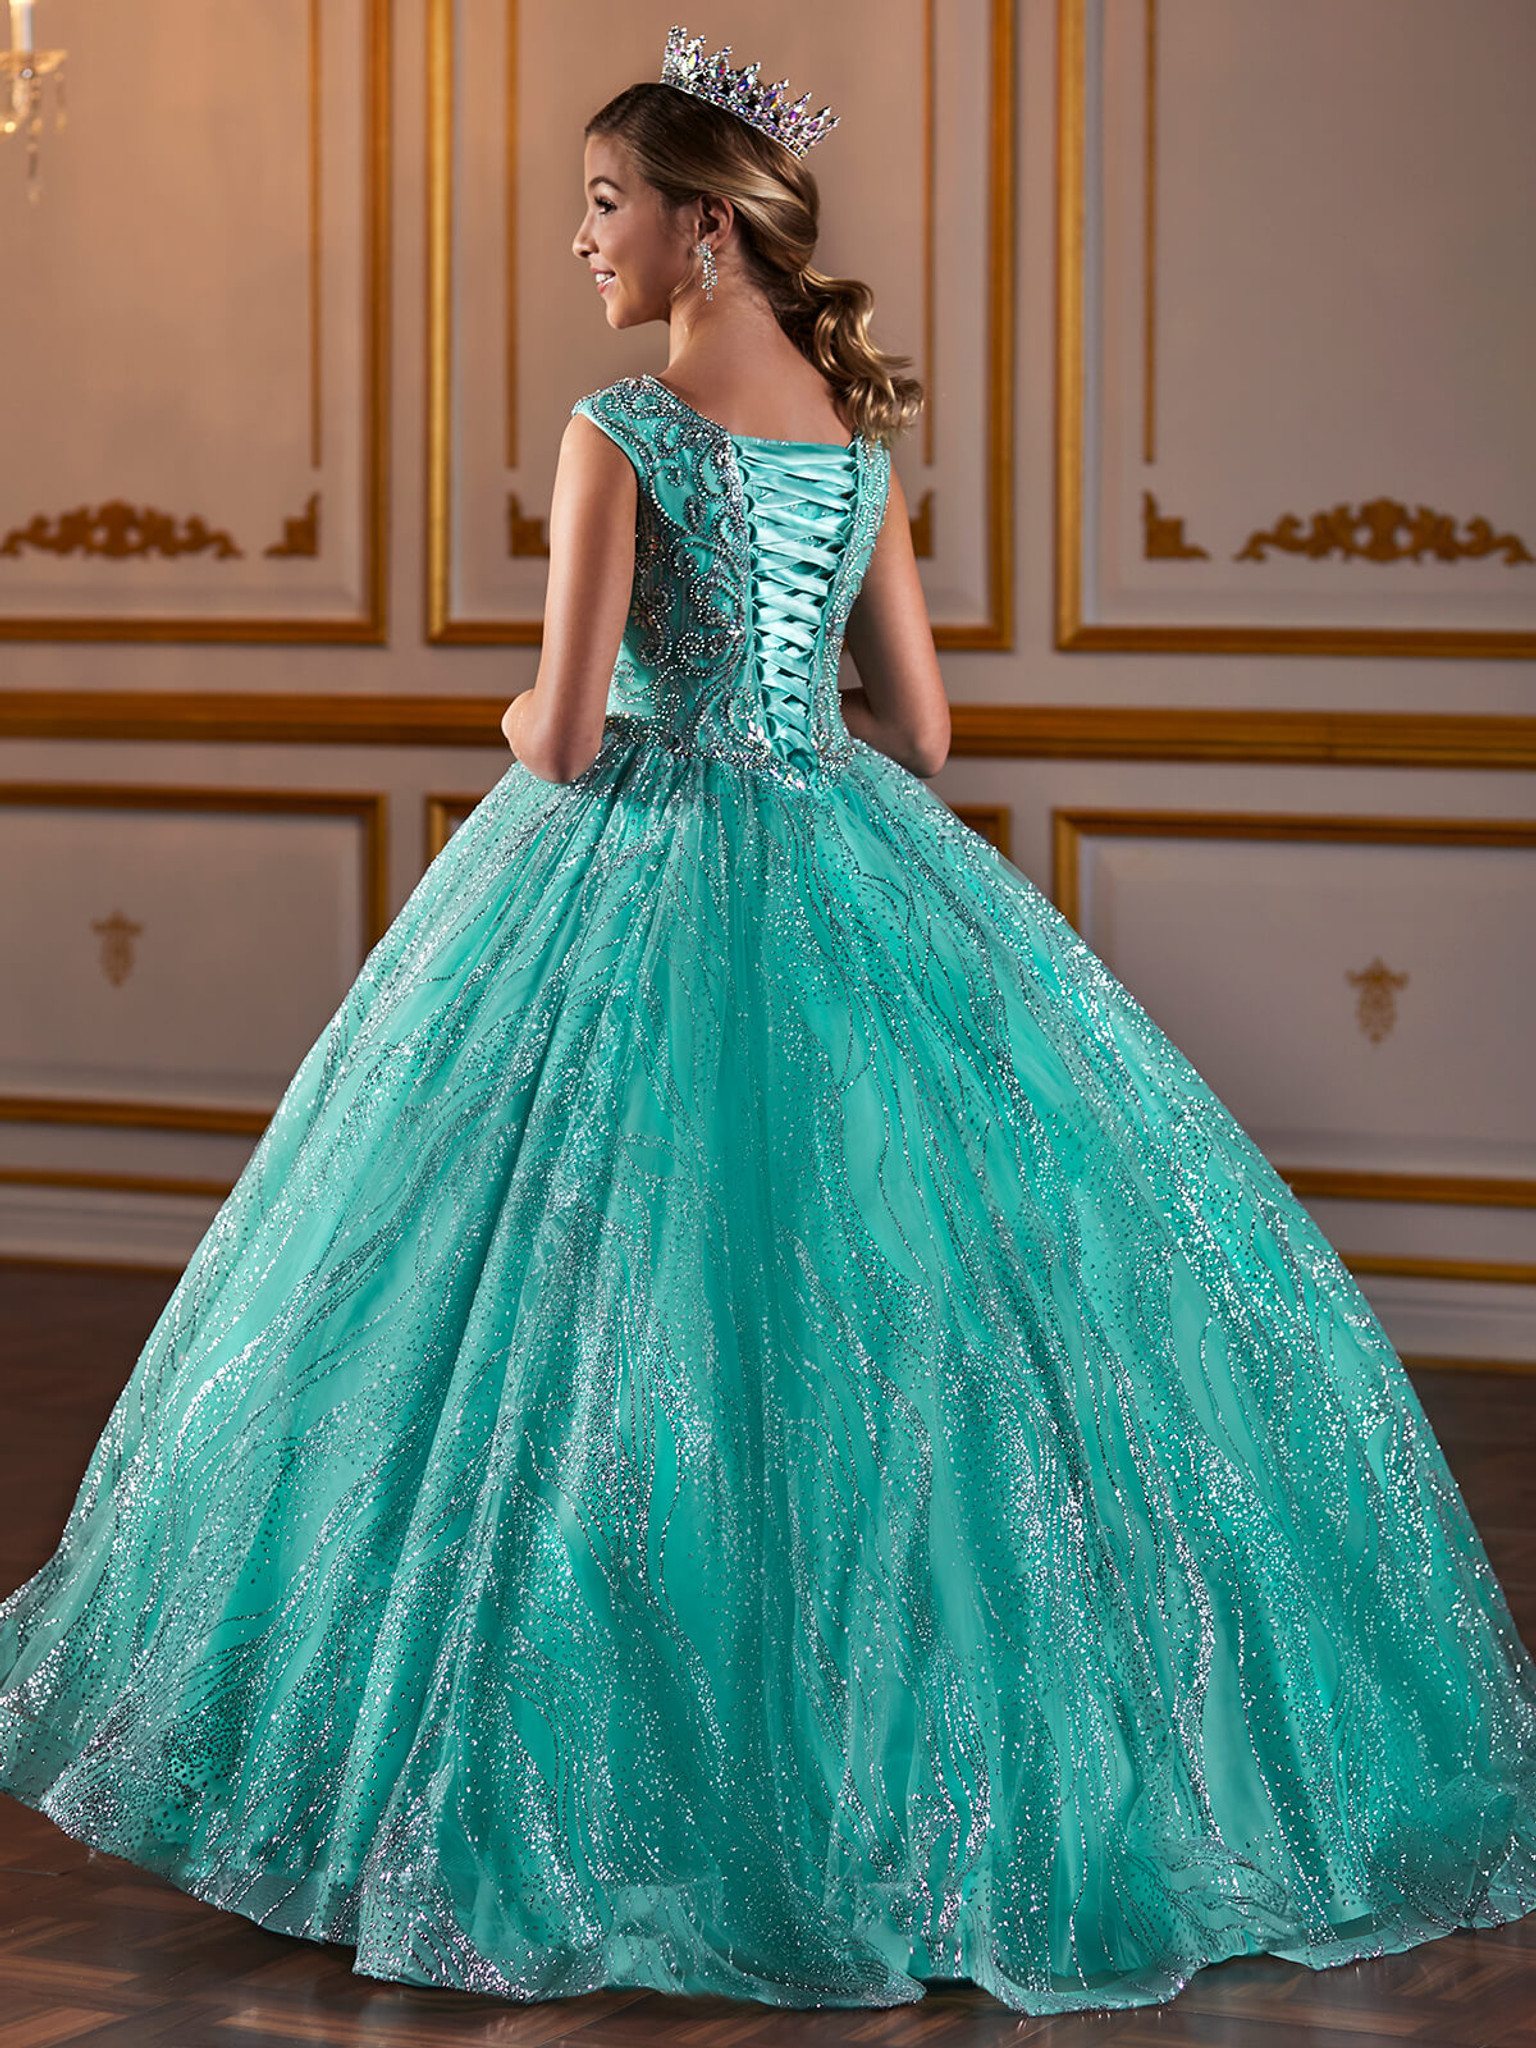 Scoop Neckline Girls Pageant Dress Tiffany Princess 13575